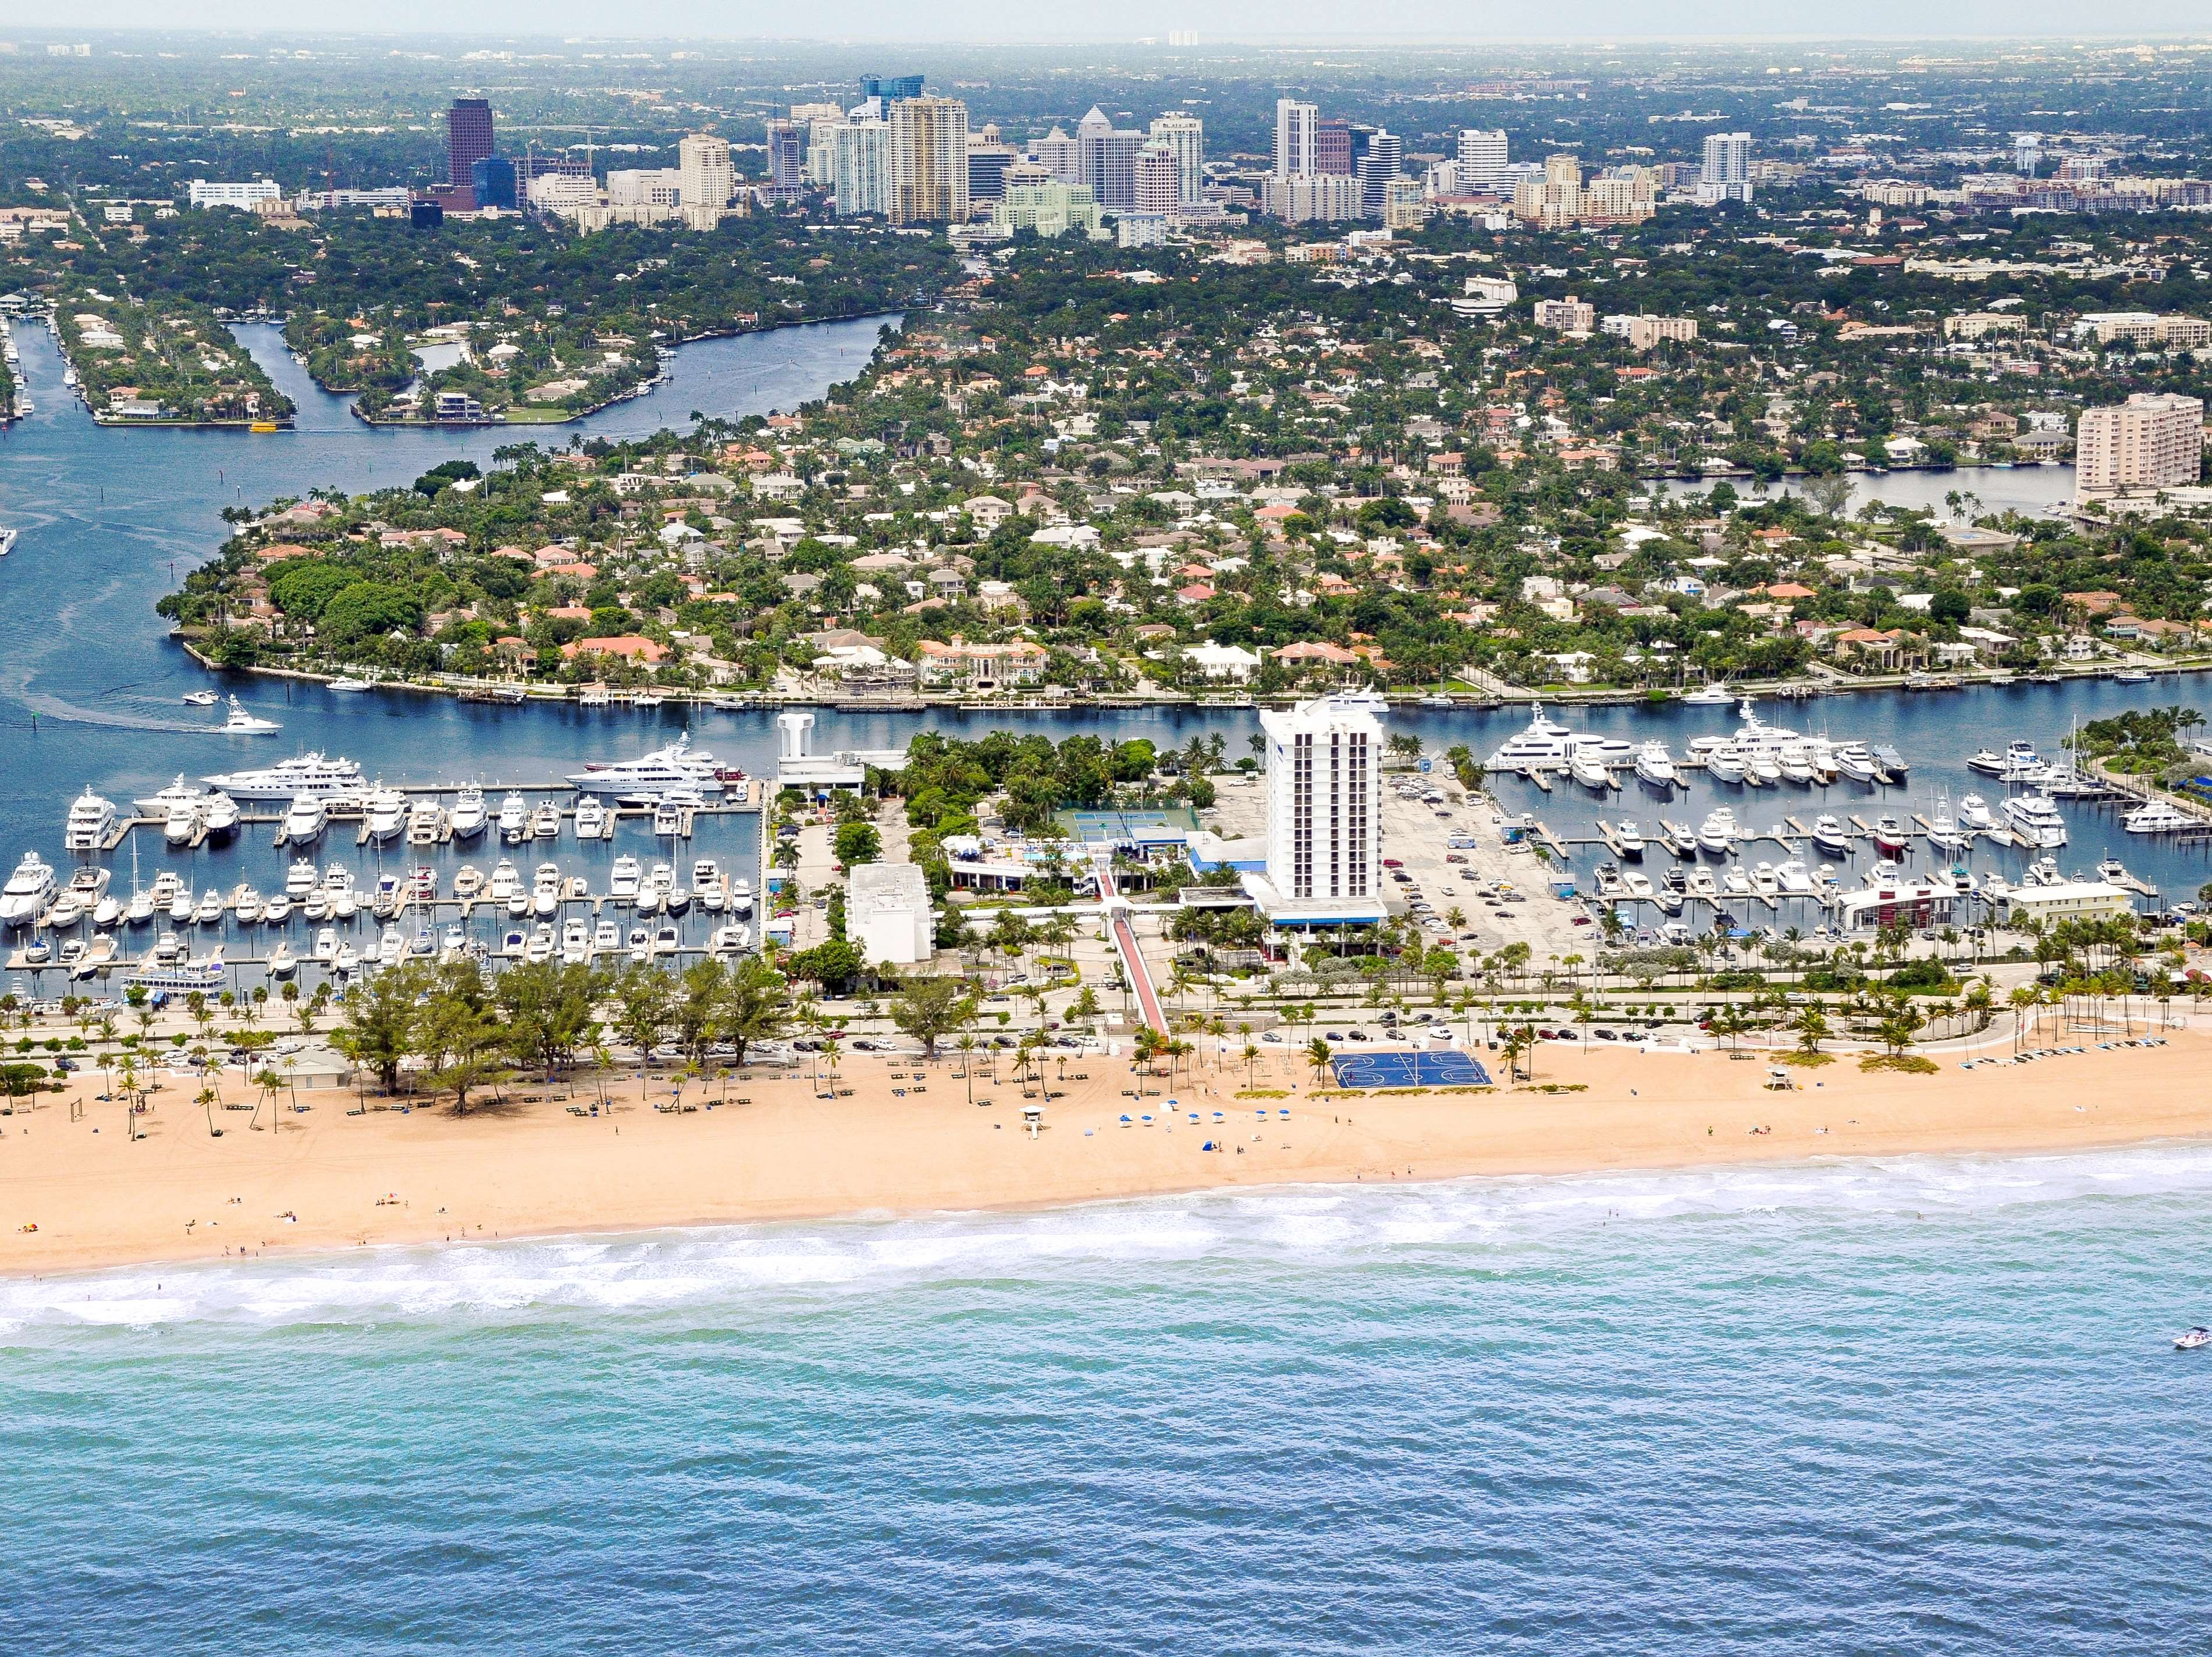 Bahia Mar Fort Lauderdale Beach - a DoubleTree by Hilton Hotel in Fort Lauderdale, FL, photo #4